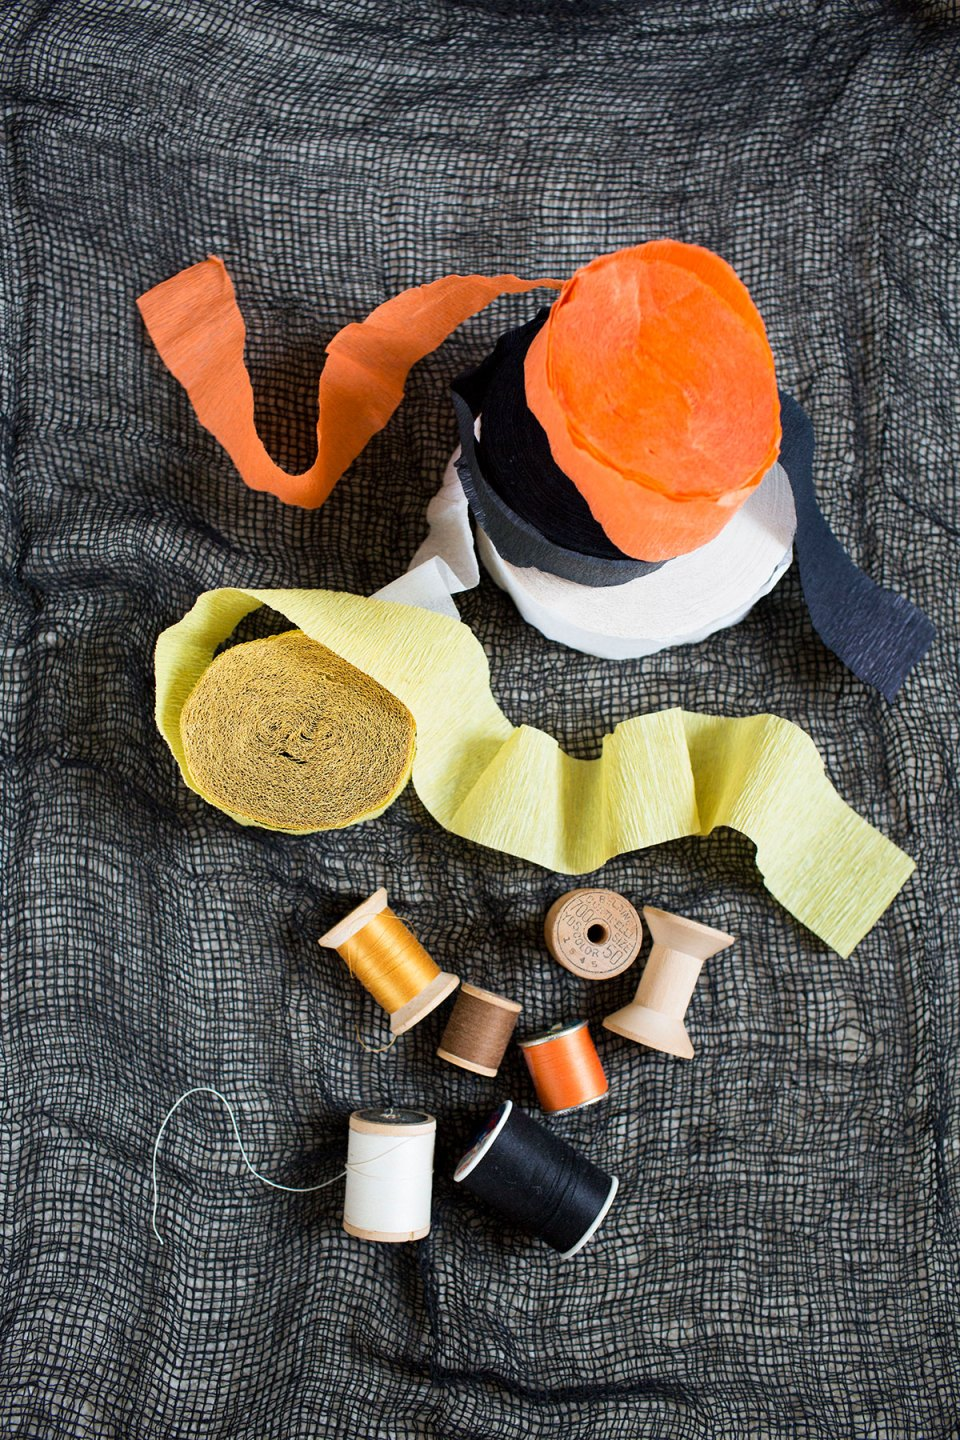 Craft Supplies for Halloween Trees